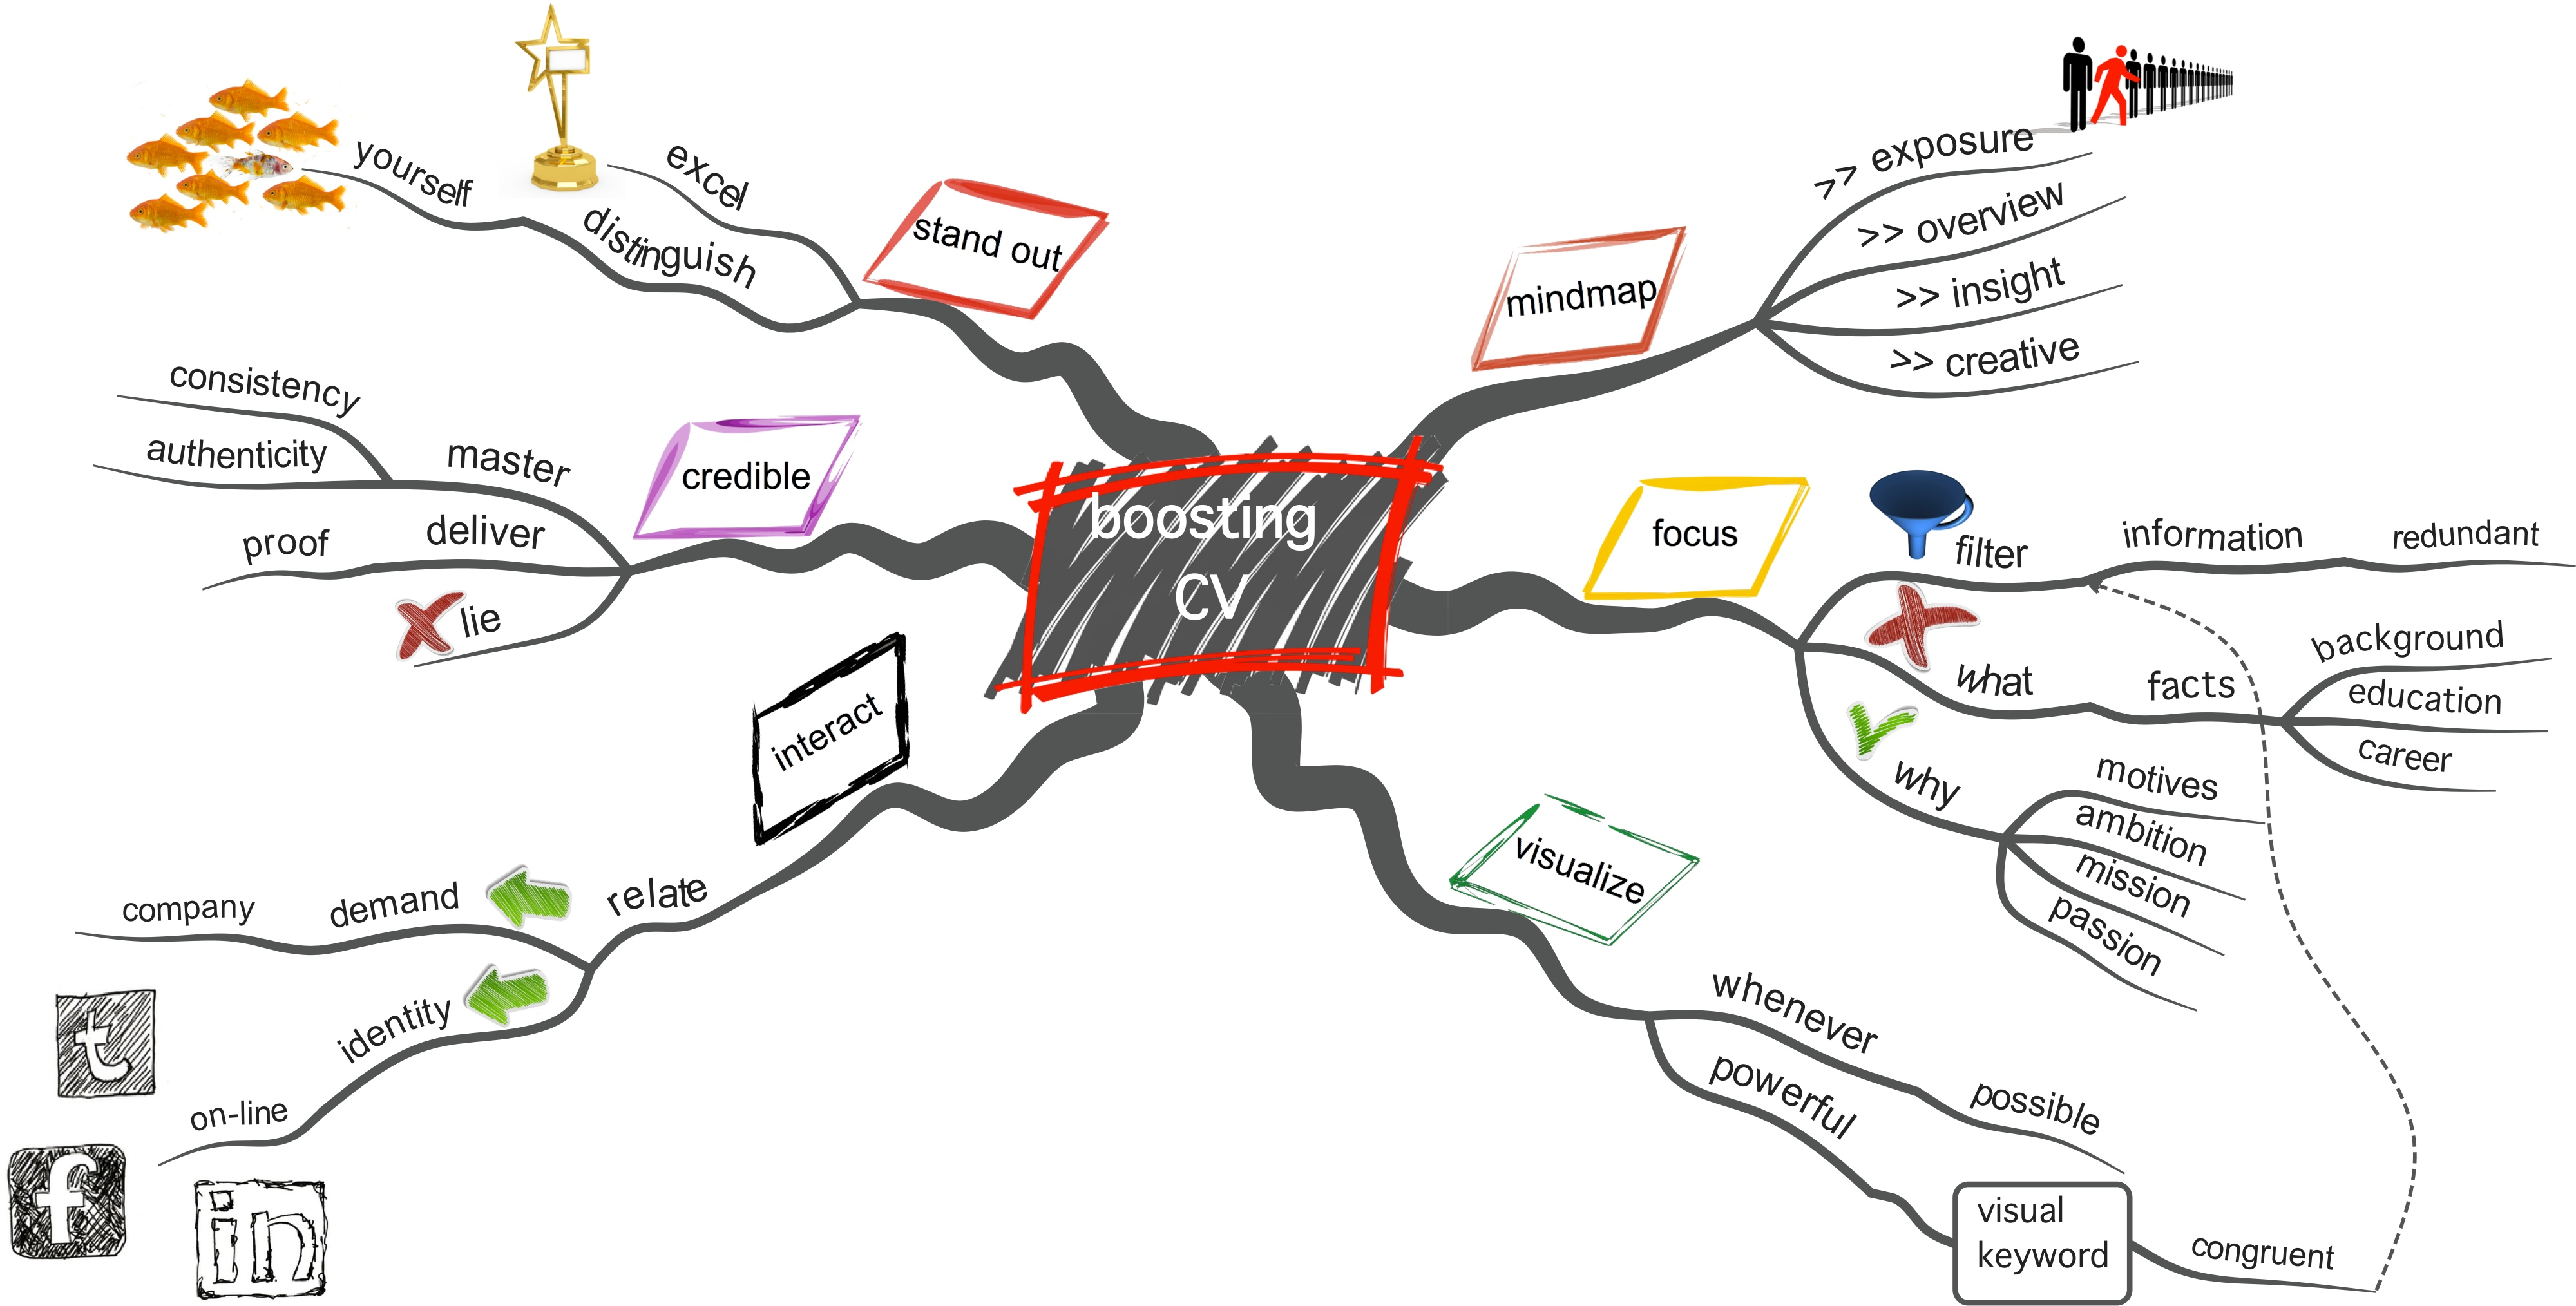 Cv Help Companies Resume Help Free Resume Writing Examples Tips To Write A Boosting A Cv Mastermindmaps